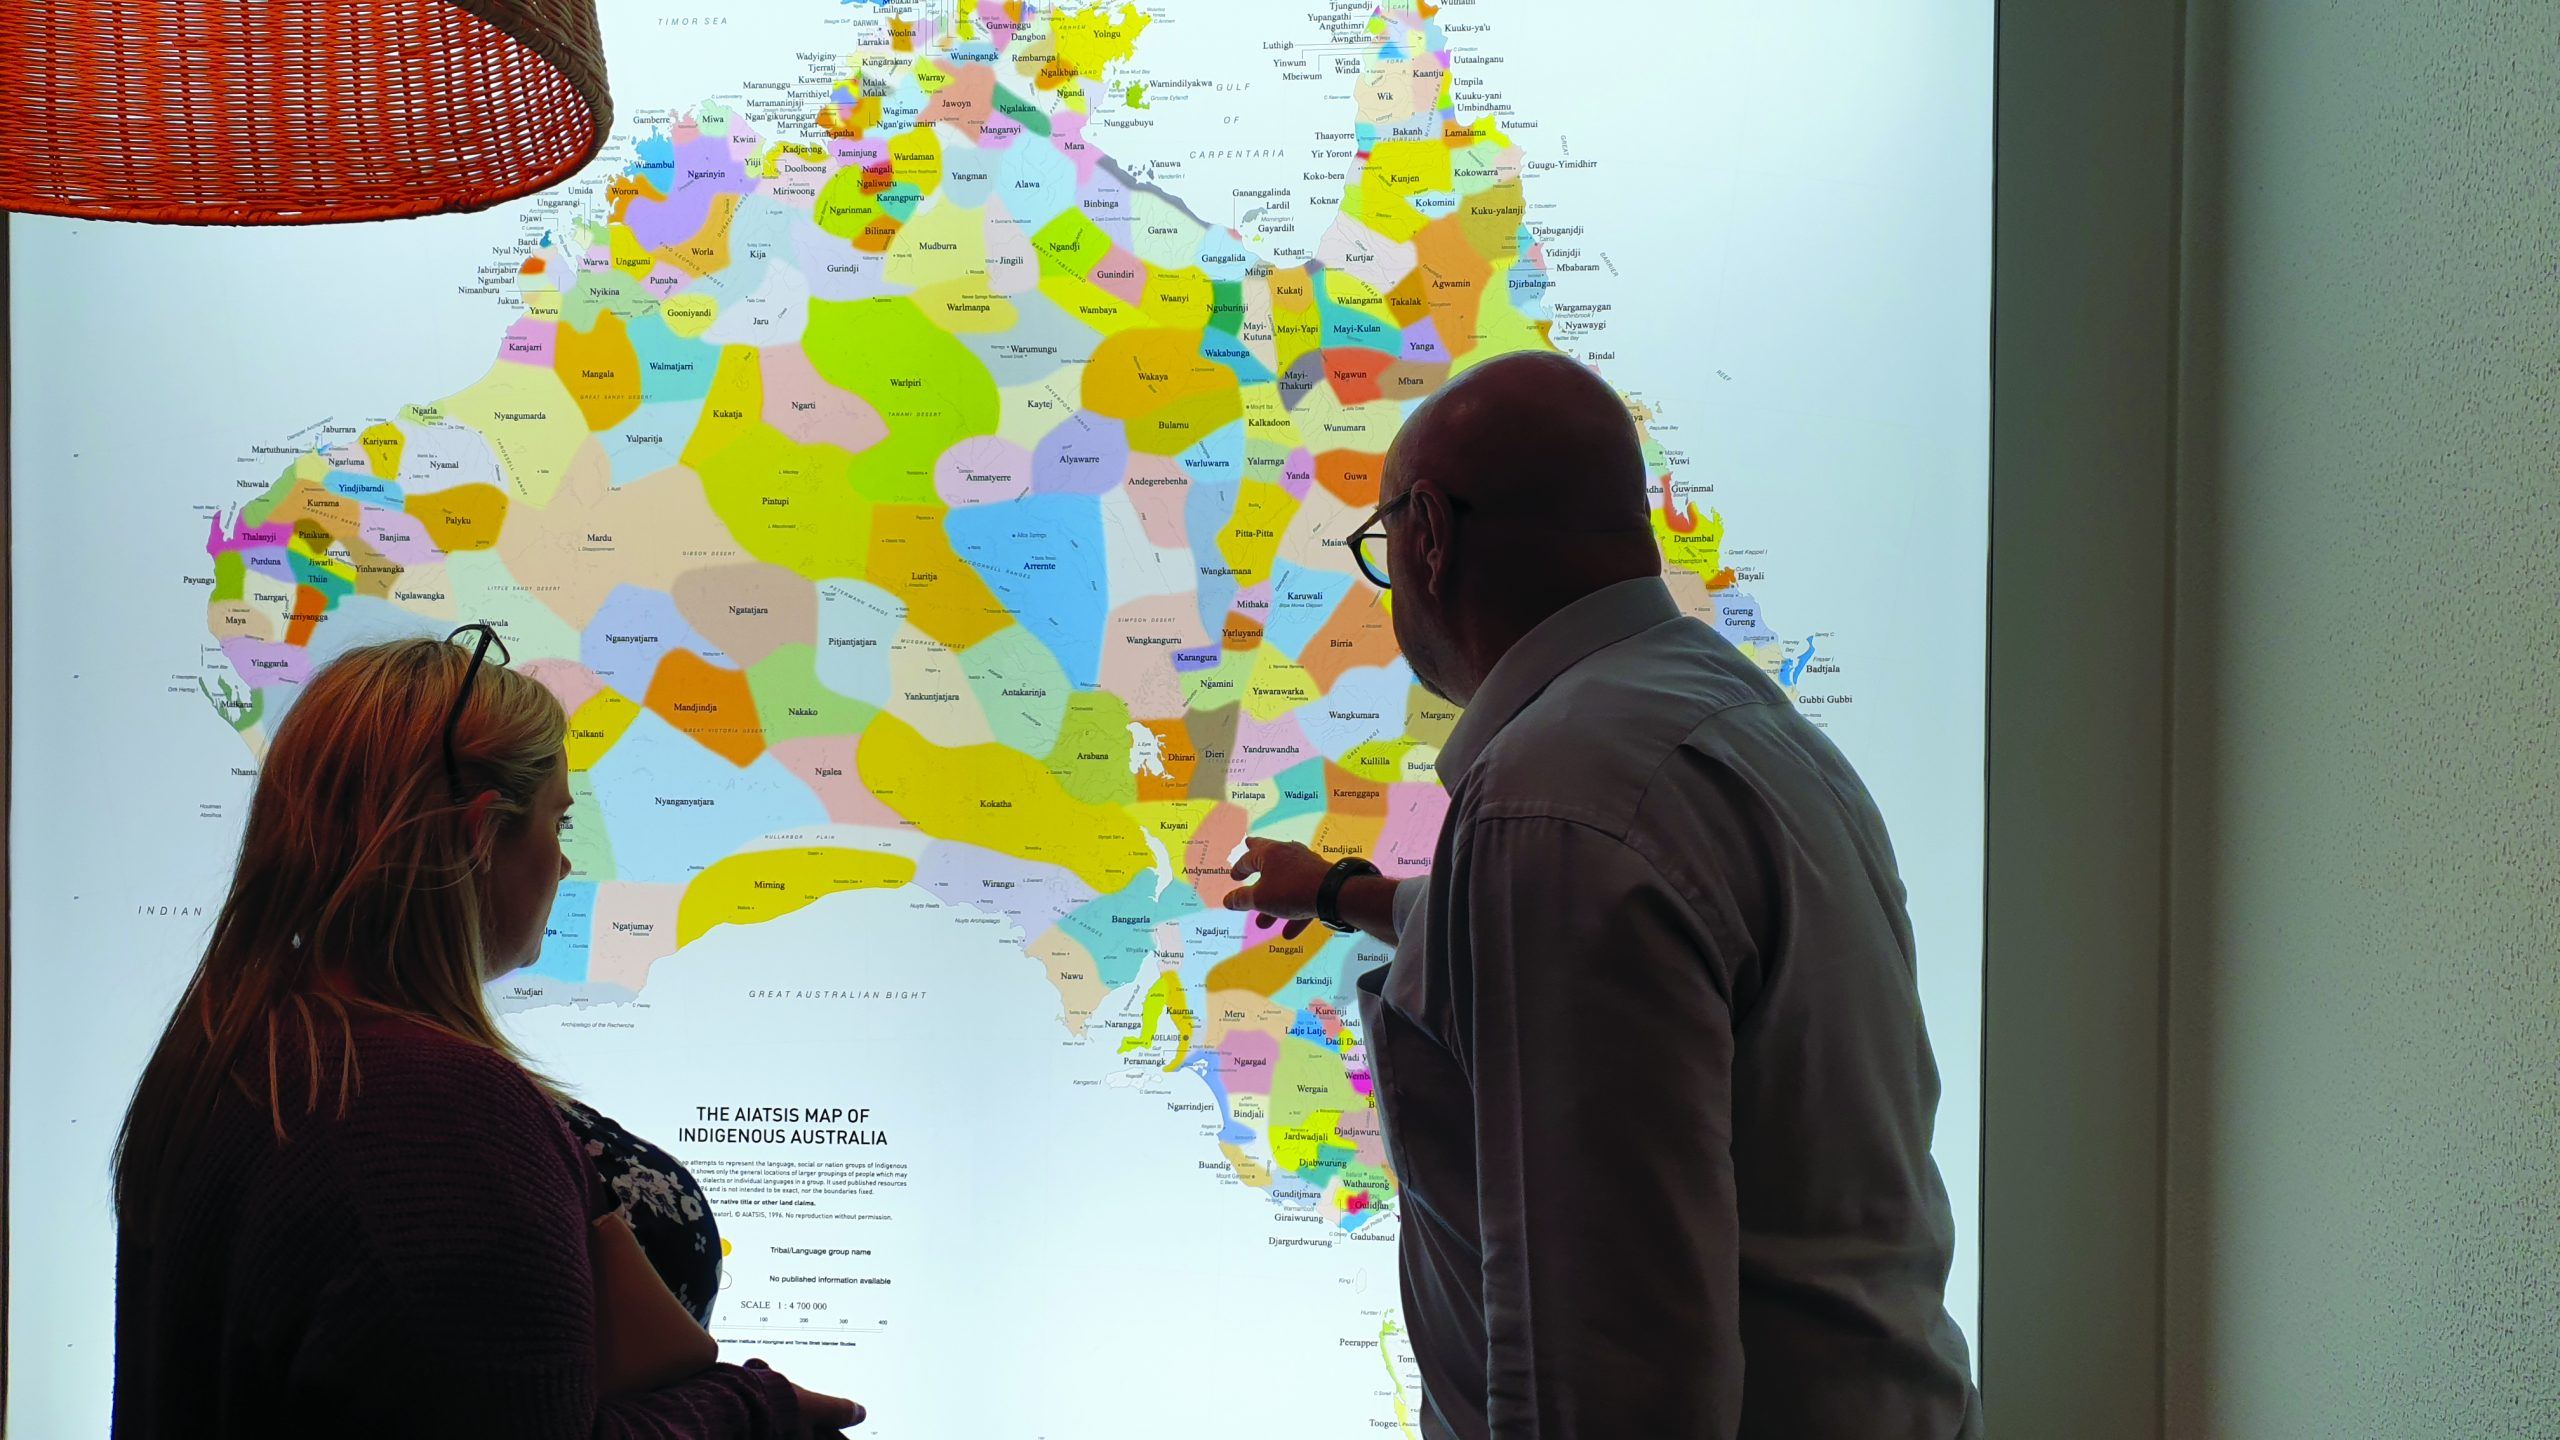 Image of IBA staff reviewing the map of Indigenous Australia in the foyer of our Brisbane office